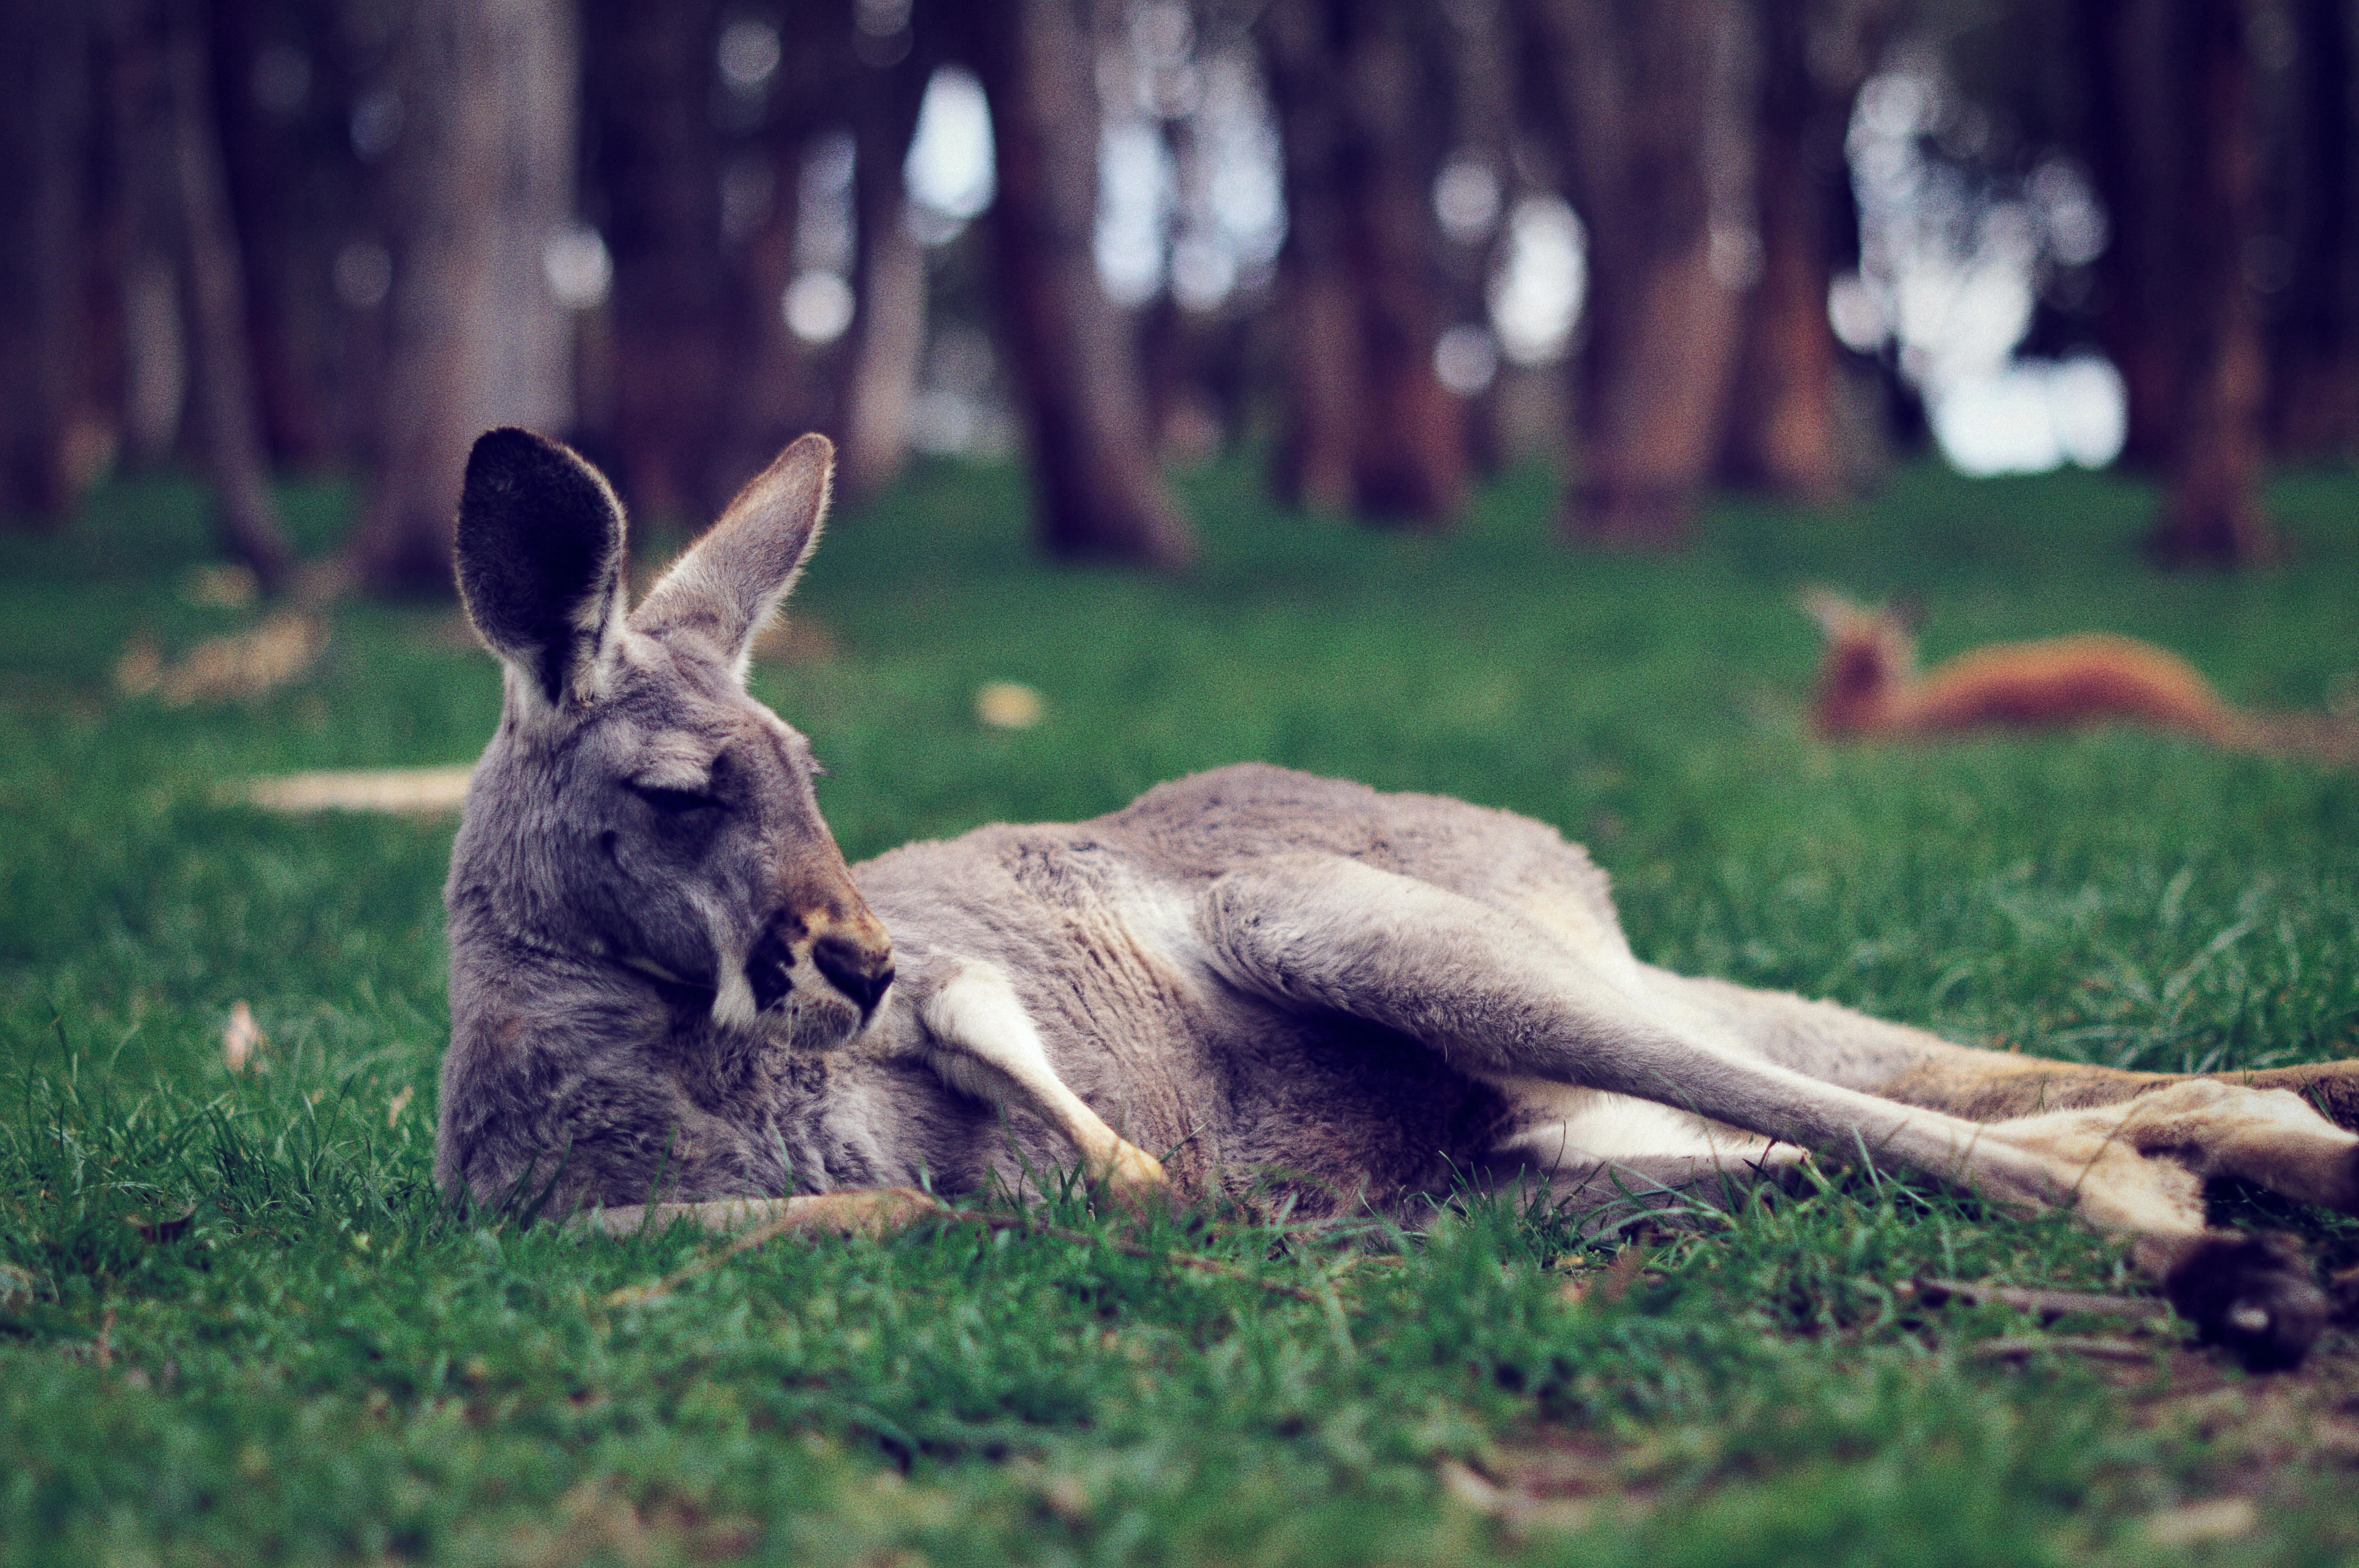 Cleland Conservation Park, Things to see in Adelaide